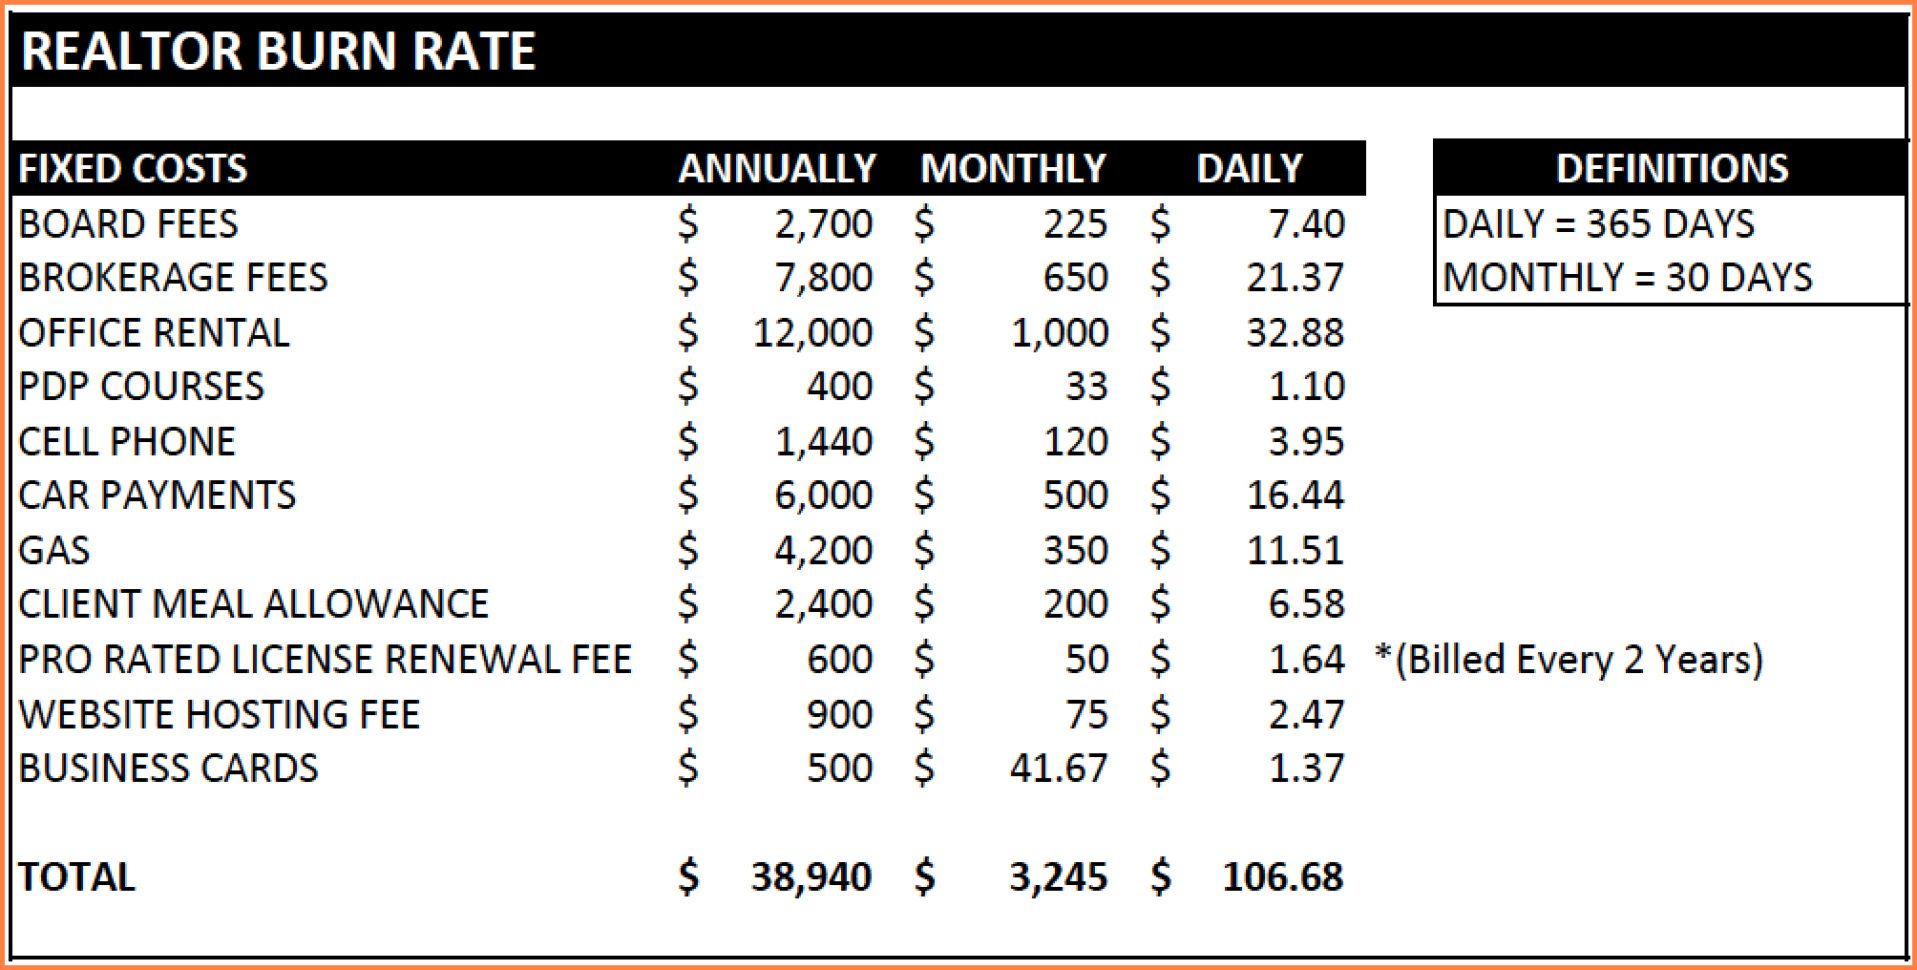 Real Estate Agent Budget Spreadsheet Intended For Budget Spreadsheet Template Free Simple Real Estate Agent Budget